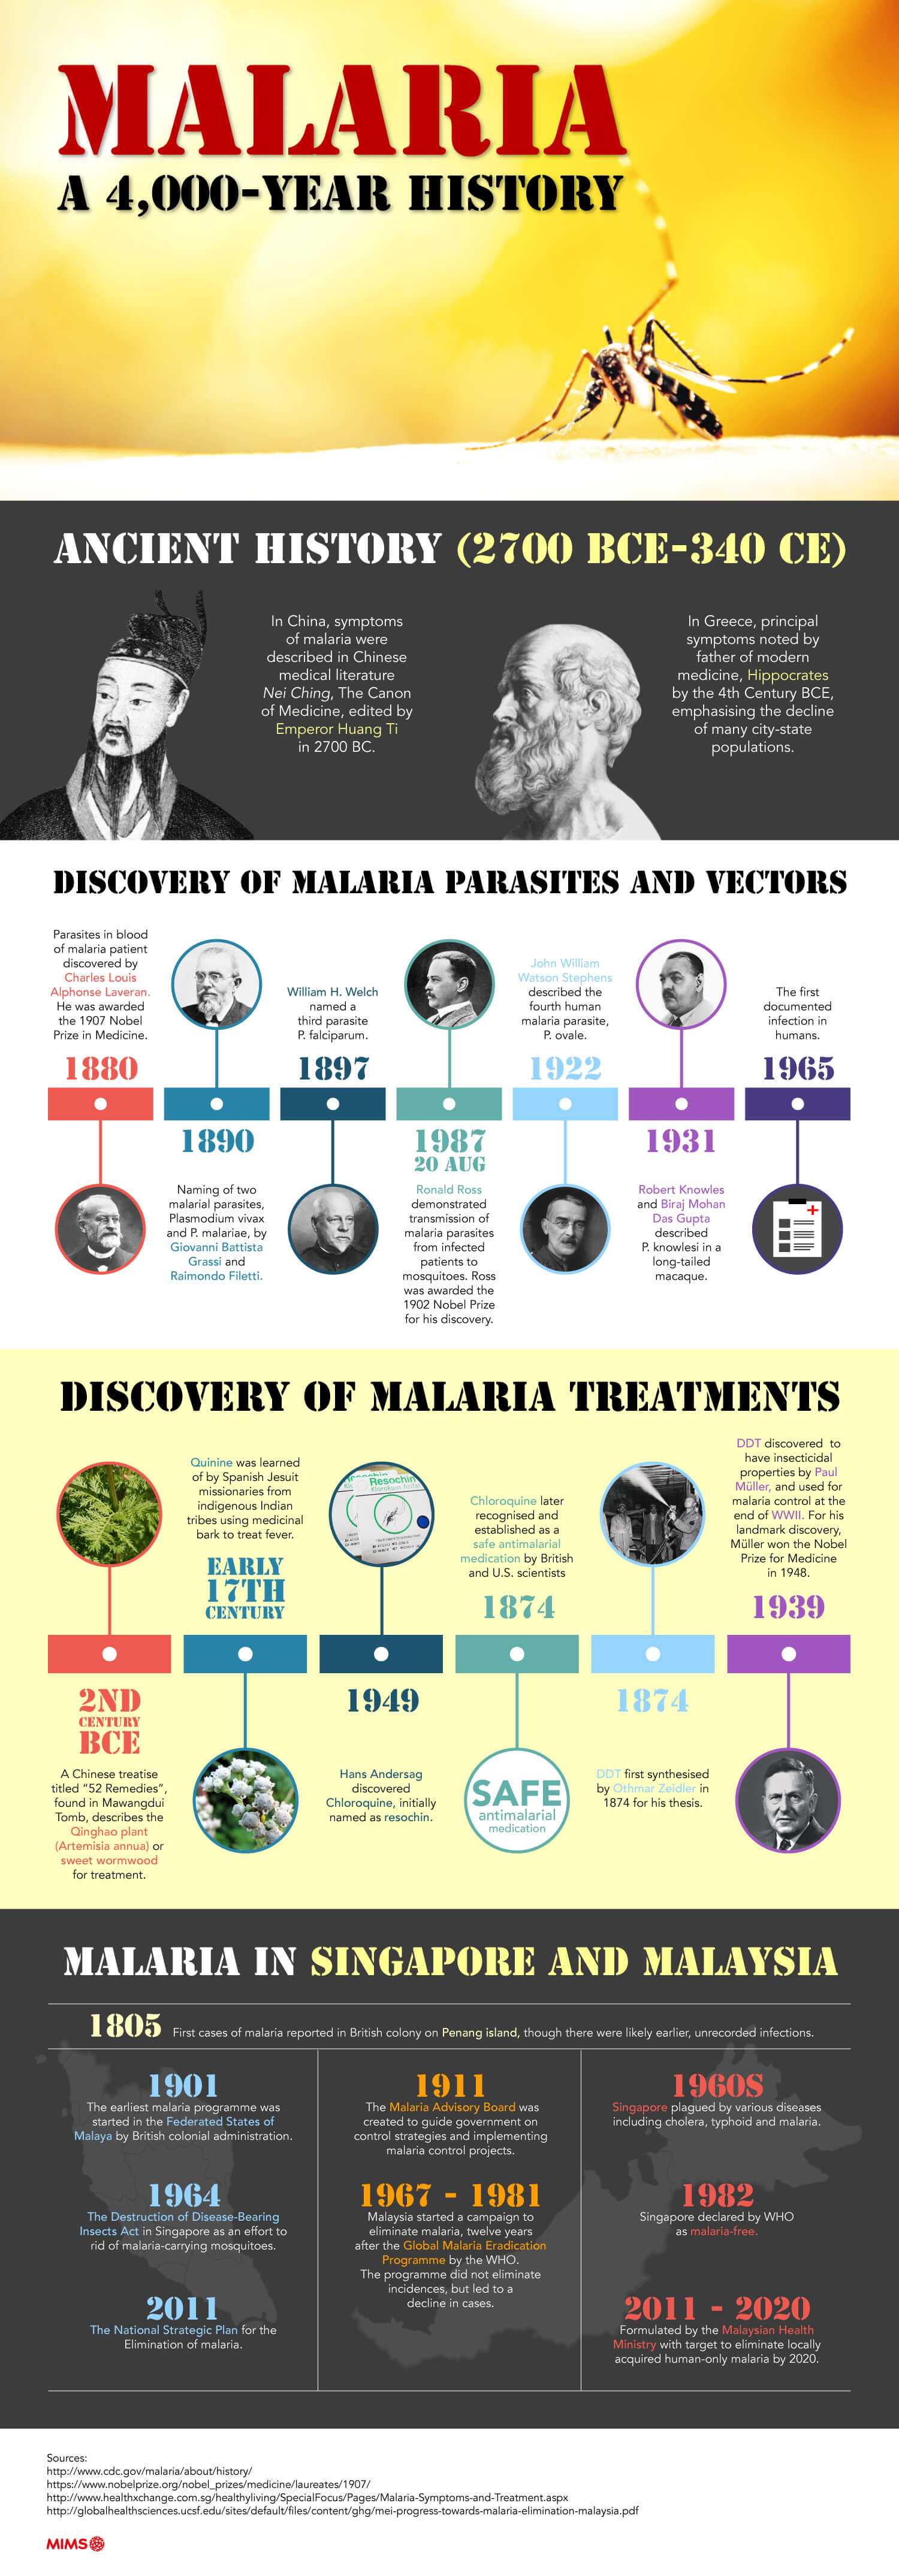 Unravelling the 4,000 year history of malaria